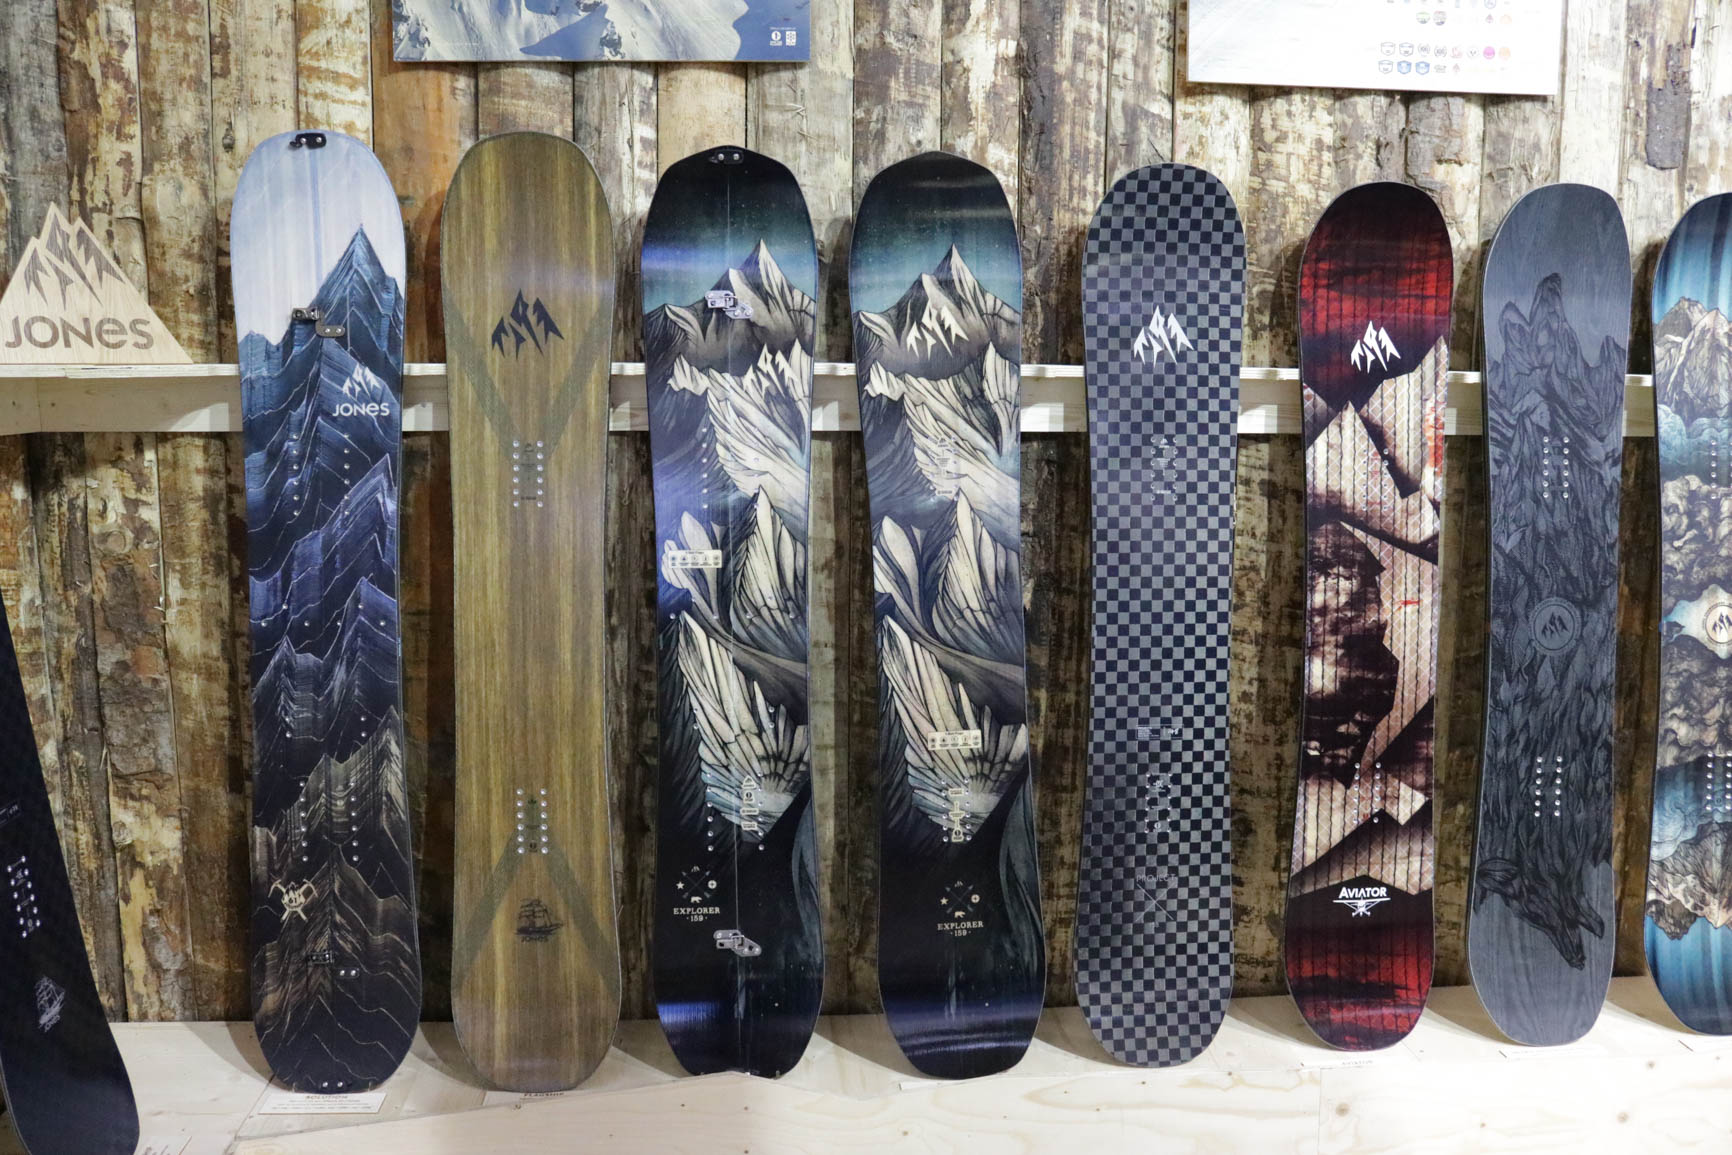 Jones Snowboards 18/19 (von links nach rechts): Solution, Flagship, Explorer Split, Explorer, Project X, Aviator, Ultra Mountain Twin